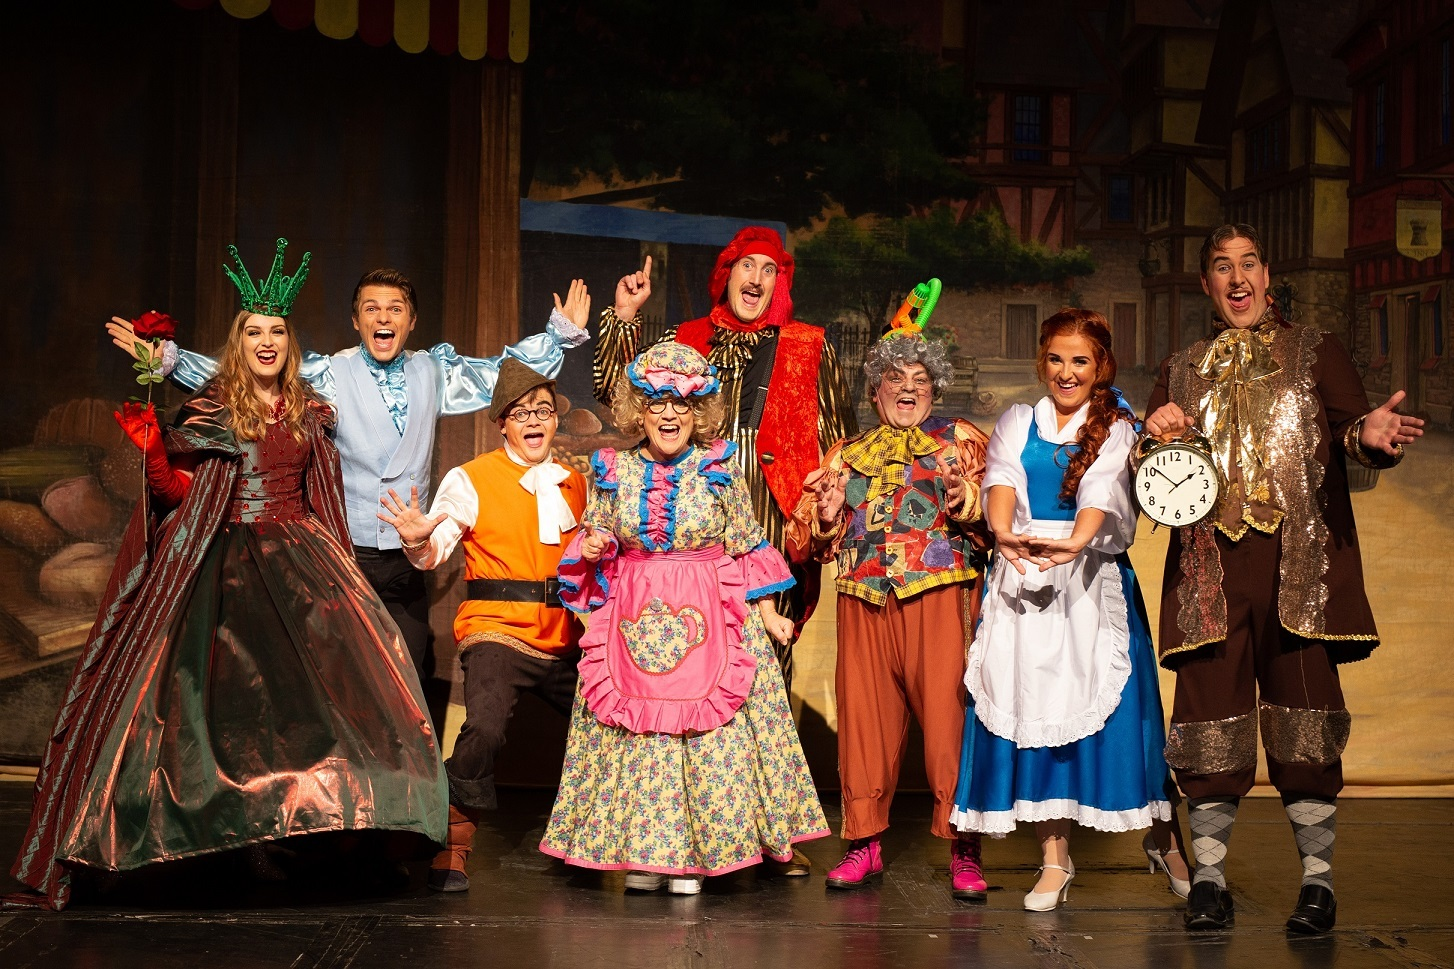 PANTOMIME: The cast of Beauty and the Beast, which is set to entertain audiences of all ages at the Empire Theatre, in Consett, over the festive period. Picture: PAUL LYNCH